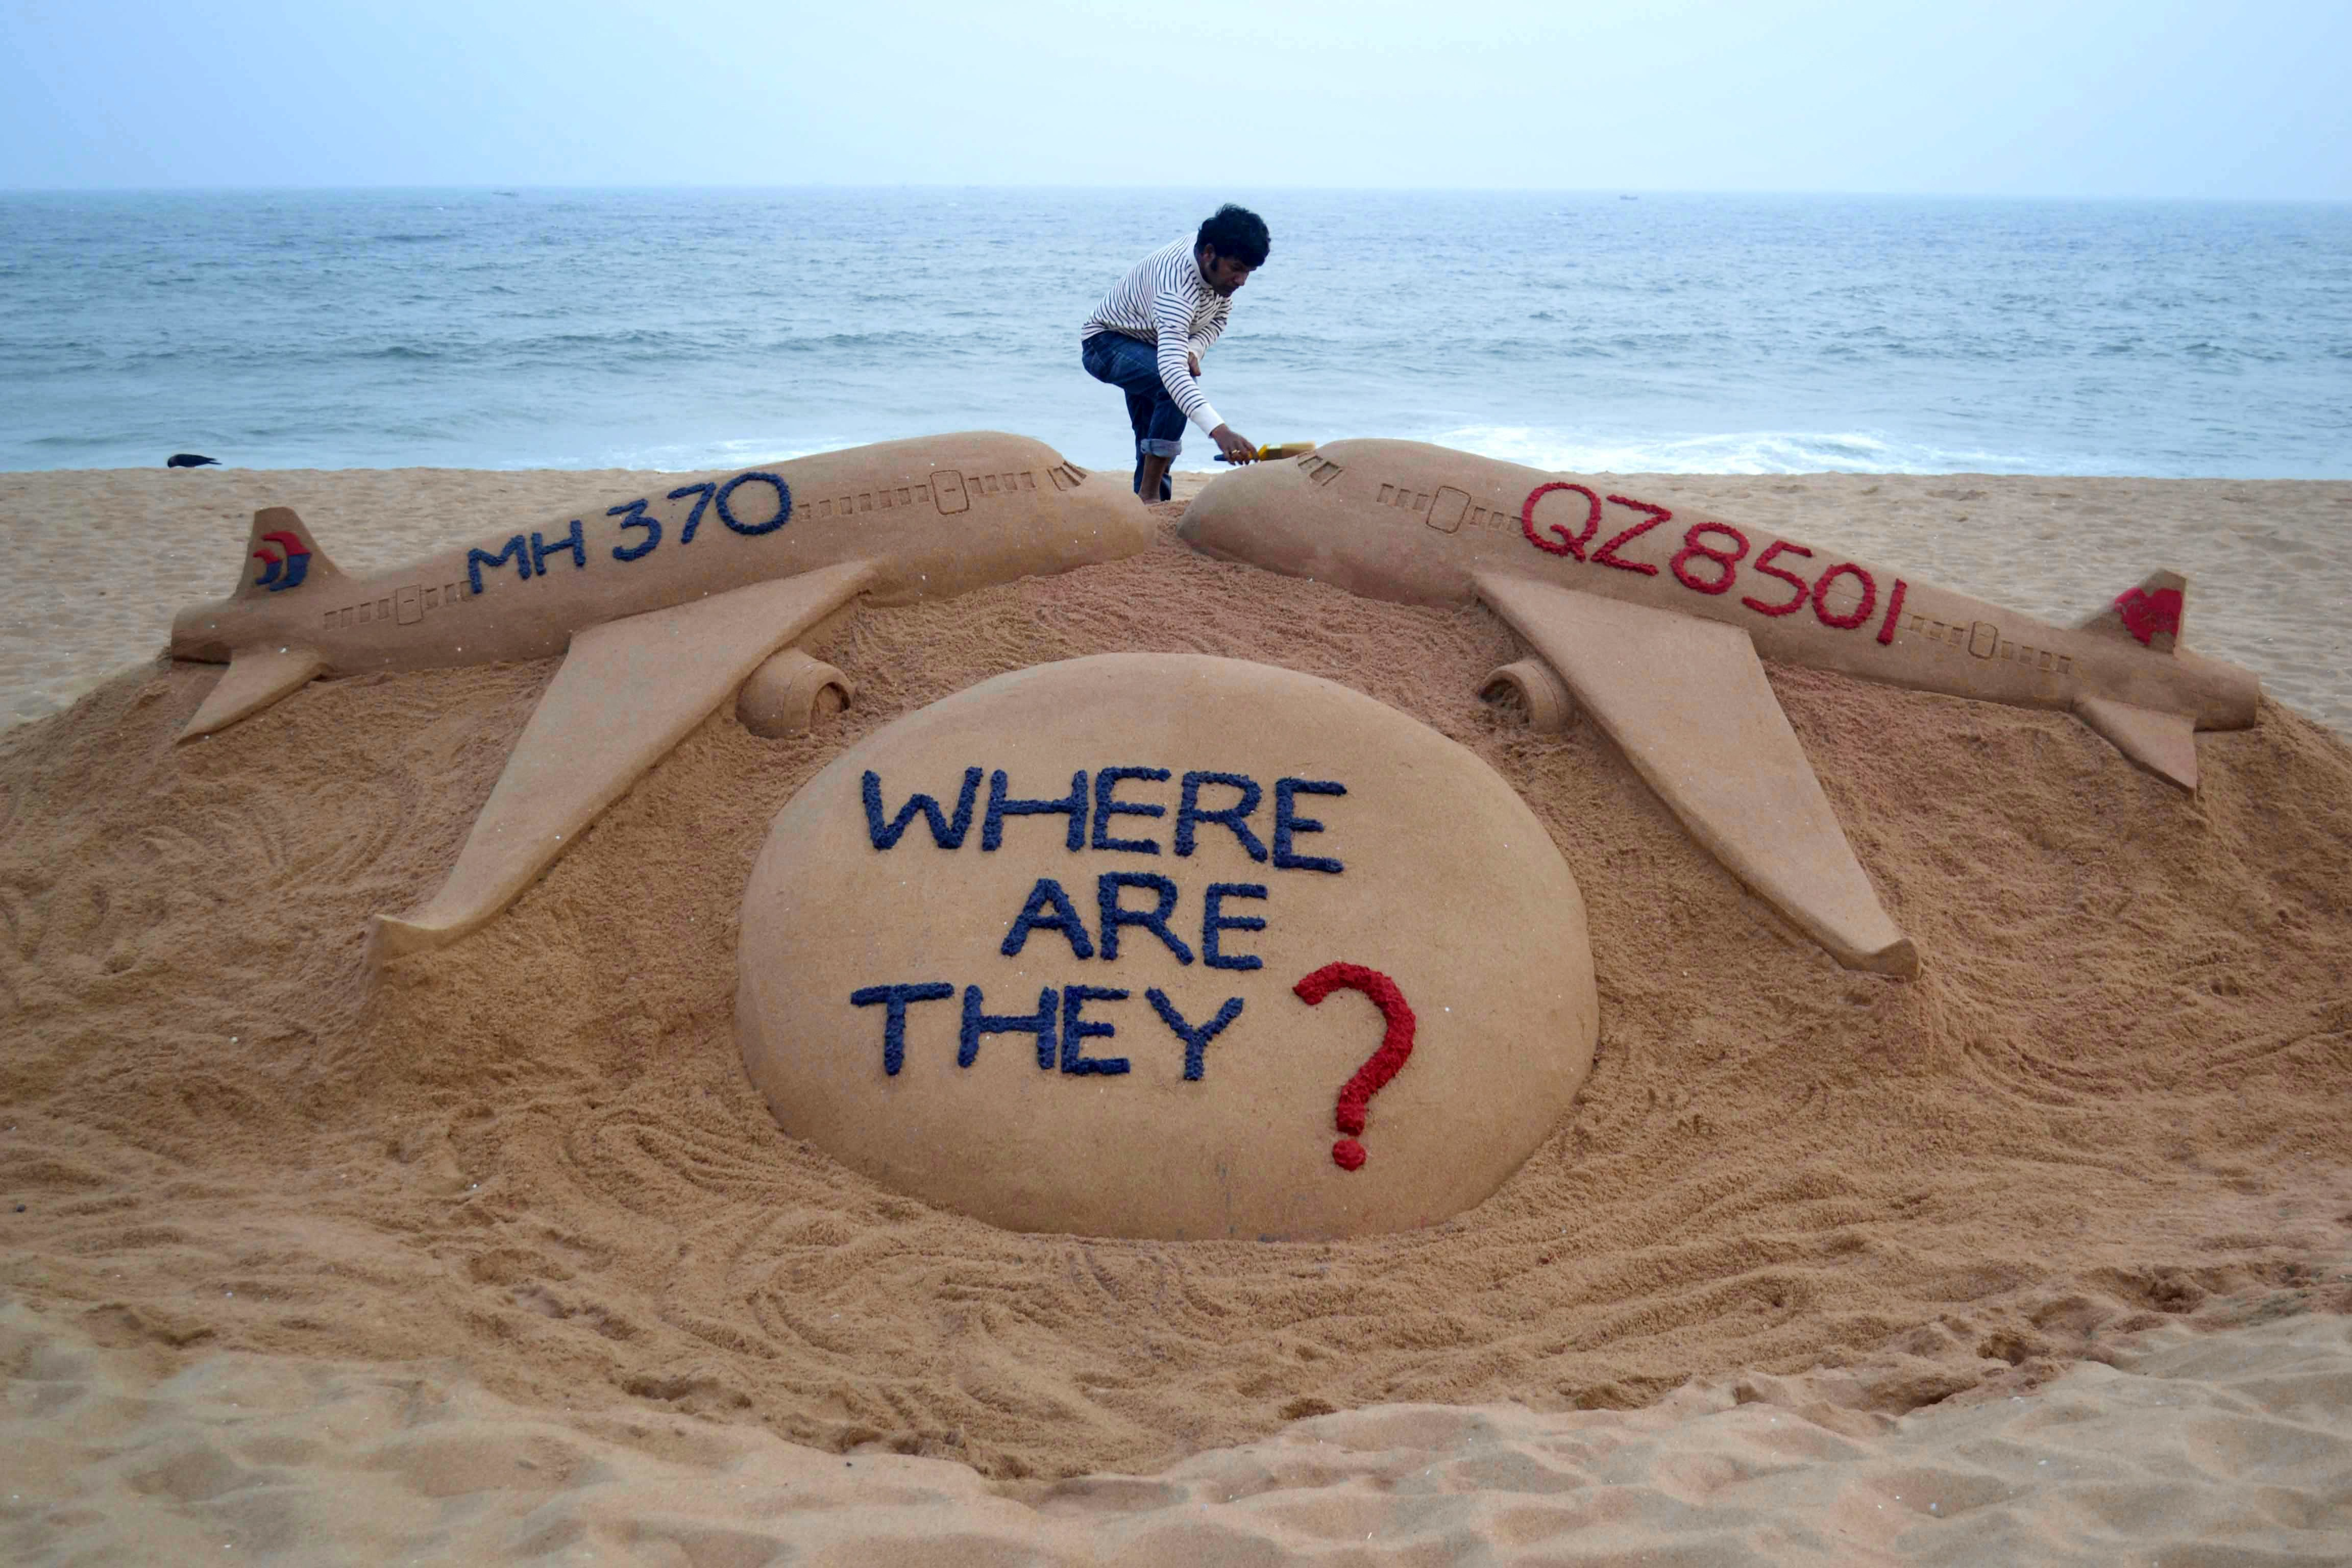 Malaysia Airlines Flight 370: Pilot Examines Hijacking and Fire Theories